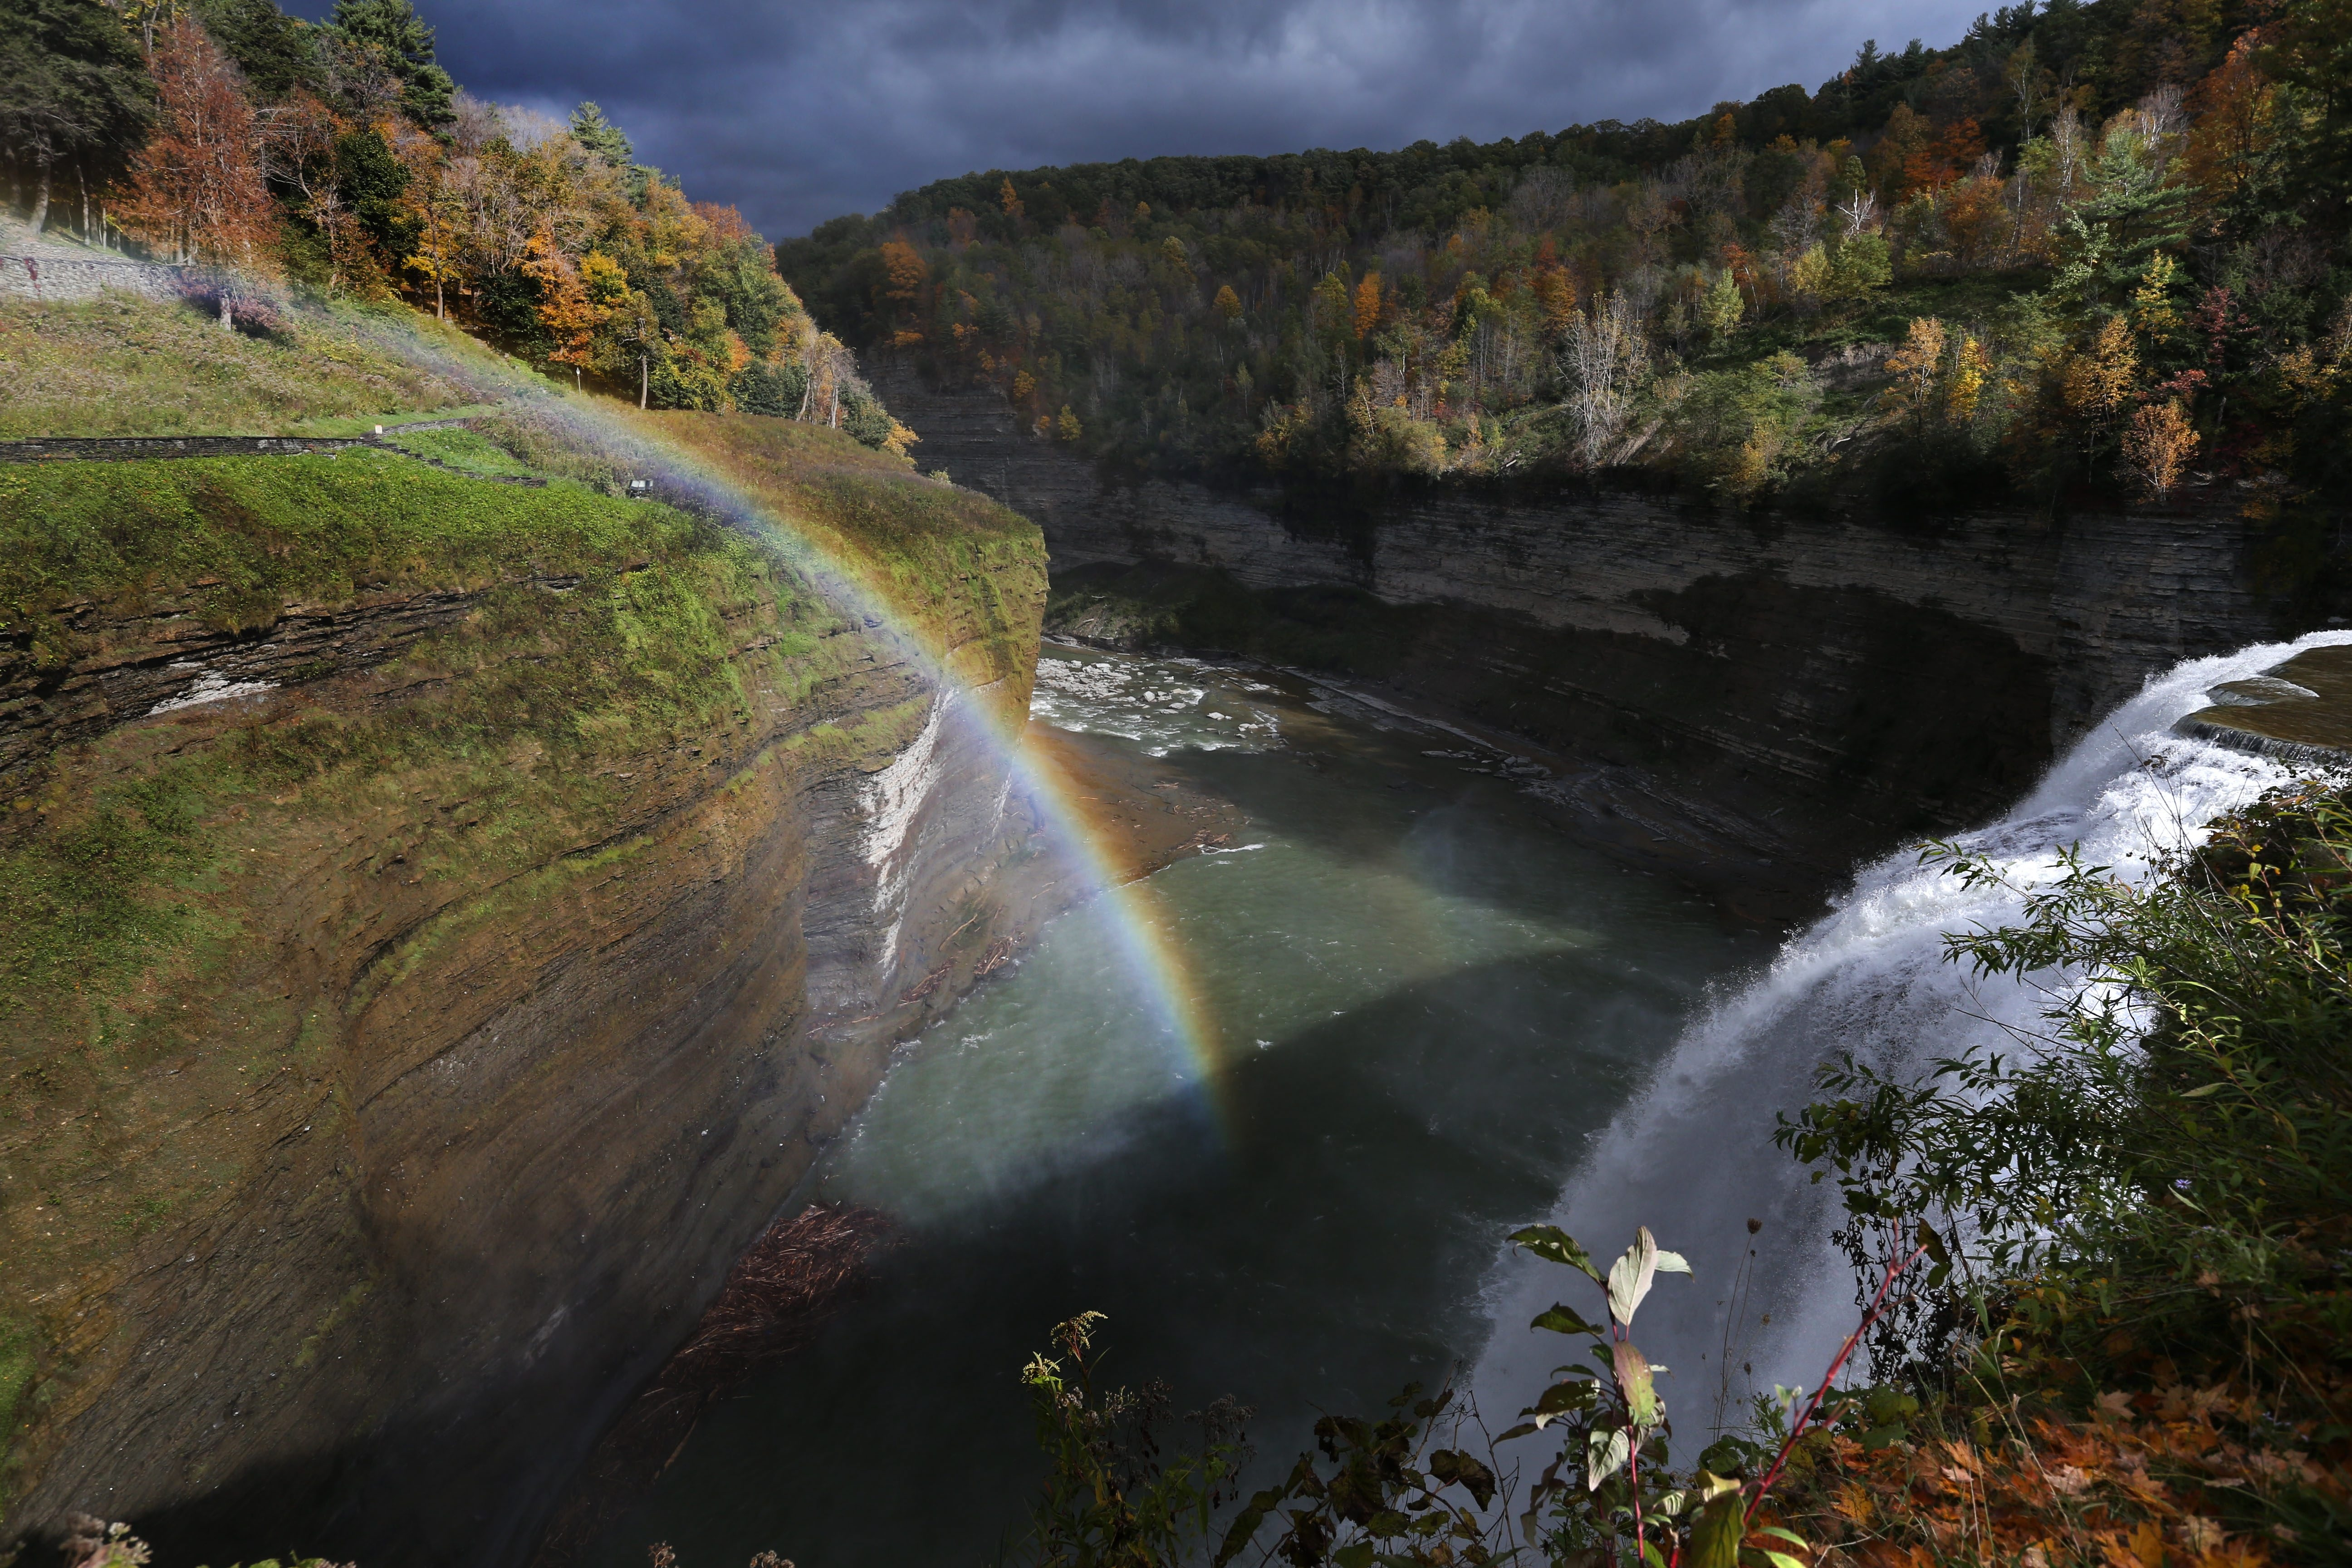 100 Things: A visit to Letchworth State Park